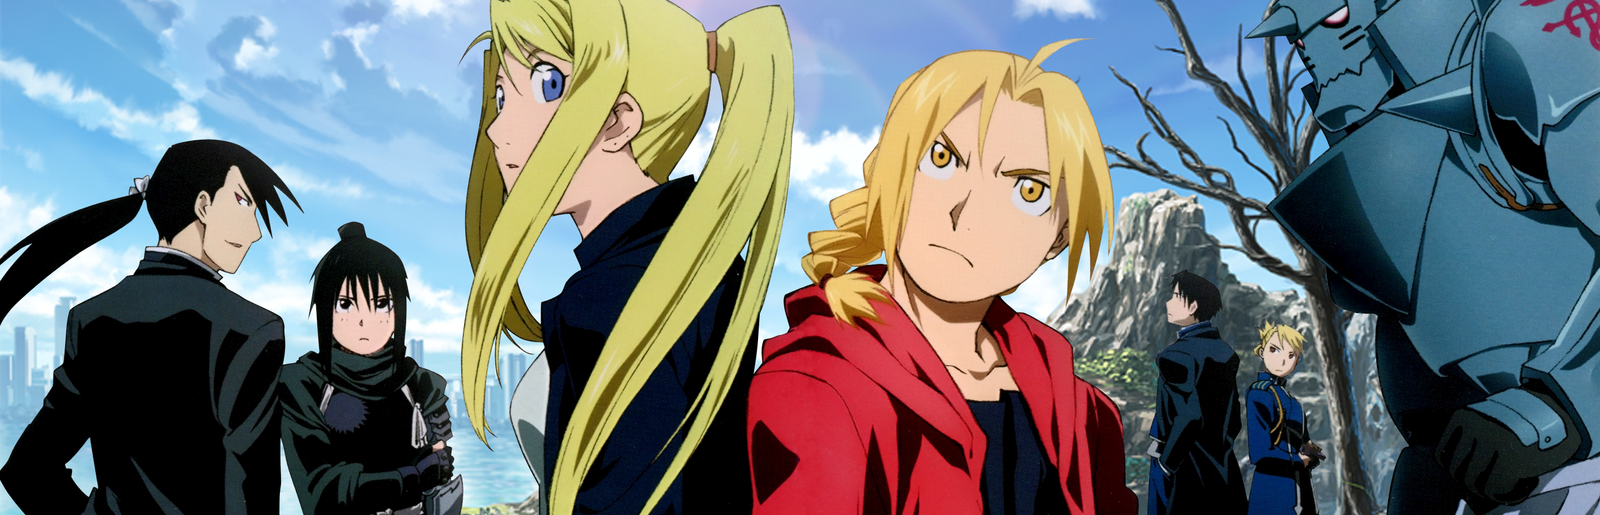 Fullmetal Alchemist: Brotherhood – Rewatch #9